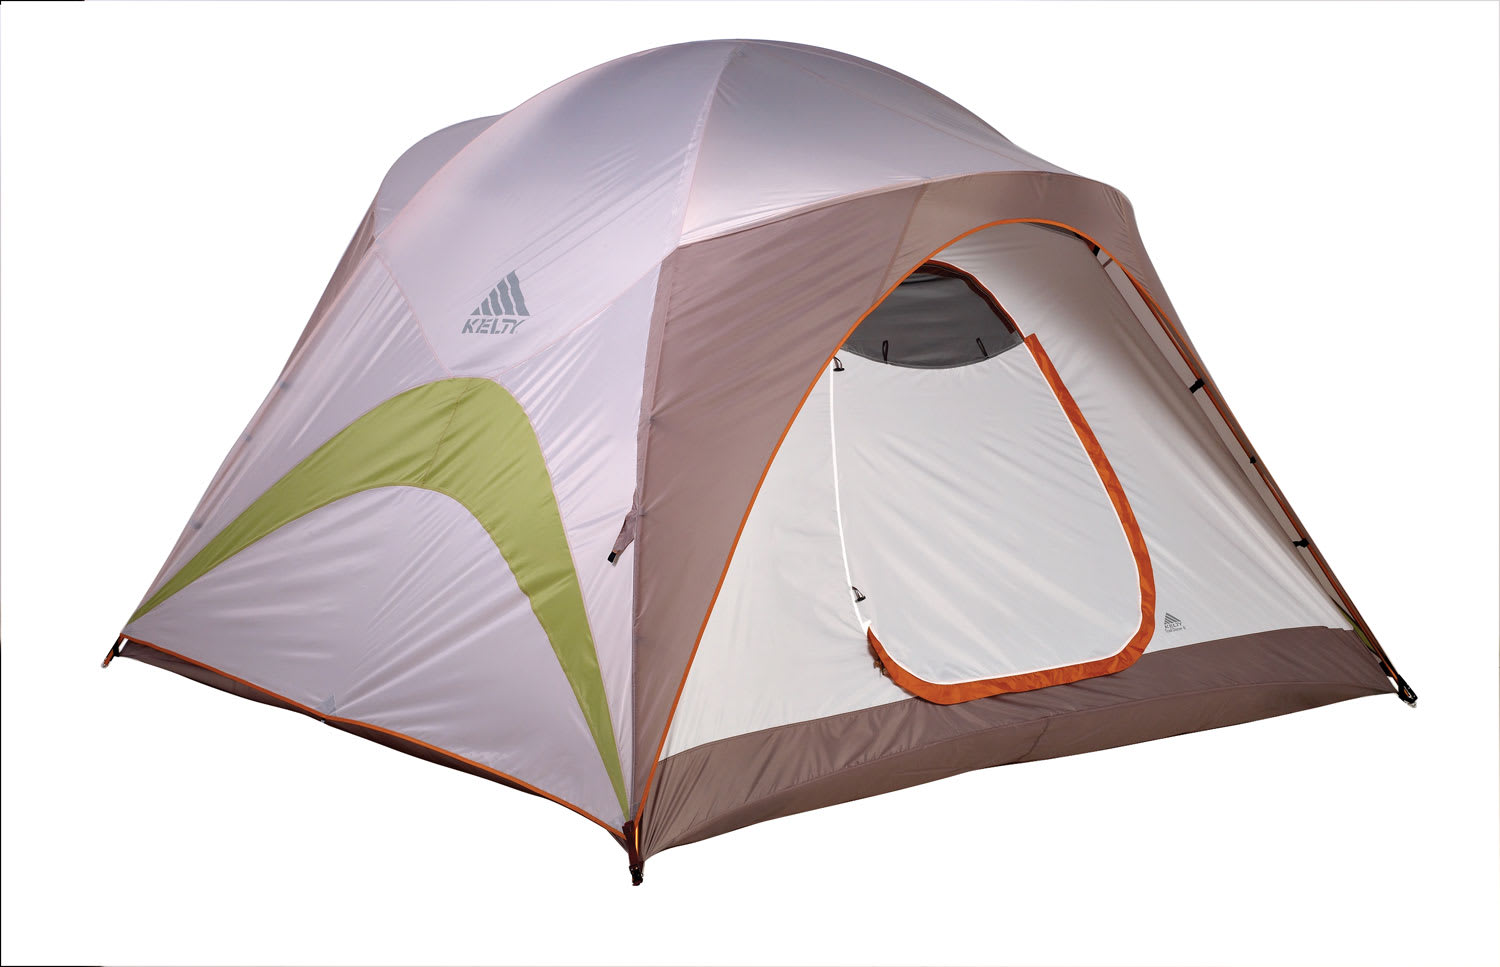 Kelty Trail Dome 4 Person Tent - thumbnail 2  sc 1 st  The House & On Sale Kelty Trail Dome 4 Person Tent up to 75% off